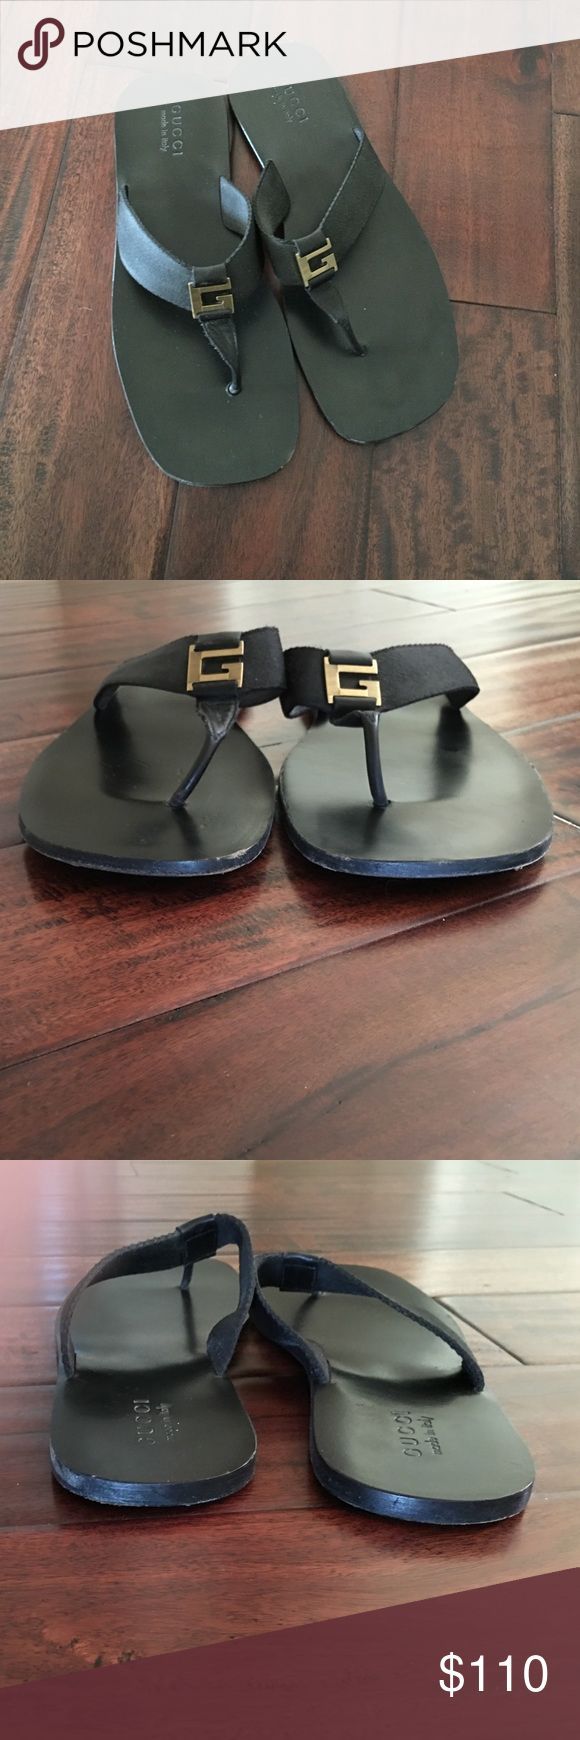 Men Gucci Thong Sandal Black rubber sole thong sandal.  Strap is nylon. Foot bed is leather. Only worn them a few times. Few scrapes in the wooden sole that could be easily filled in. Gucci Shoes Sandals & Flip-Flops